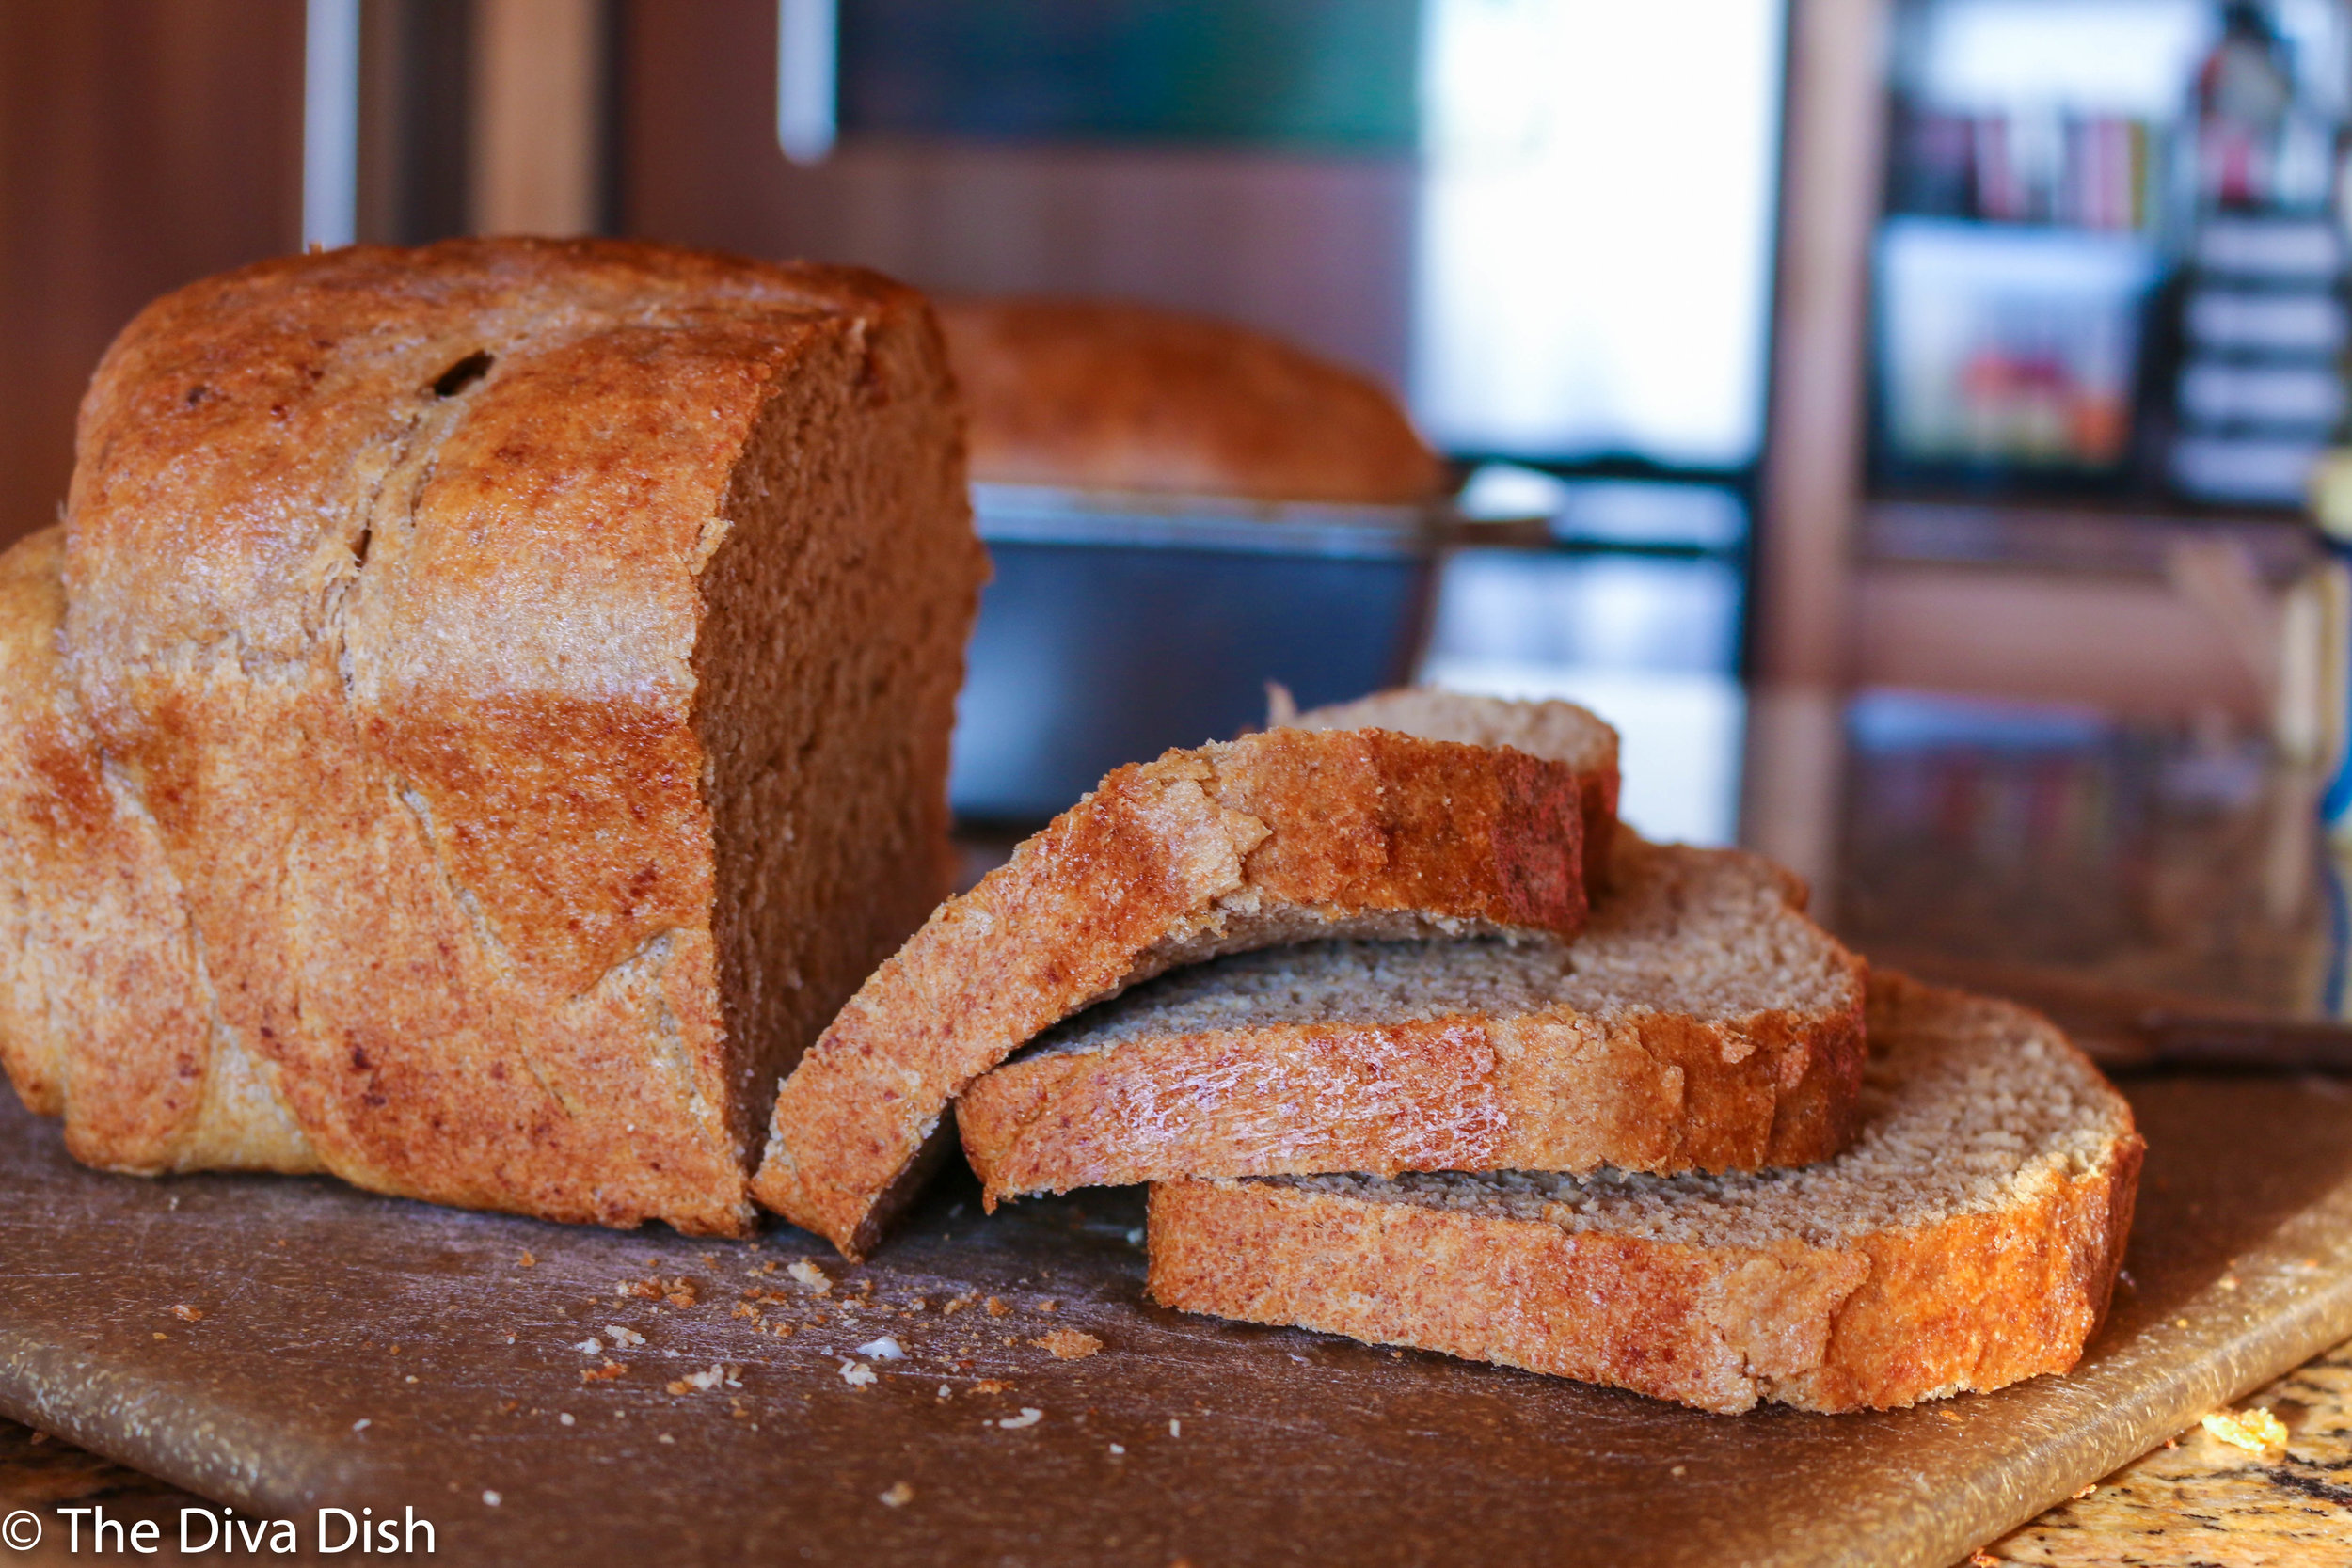 Homemade Whole Wheat Sandwich Bread via The Diva Dish